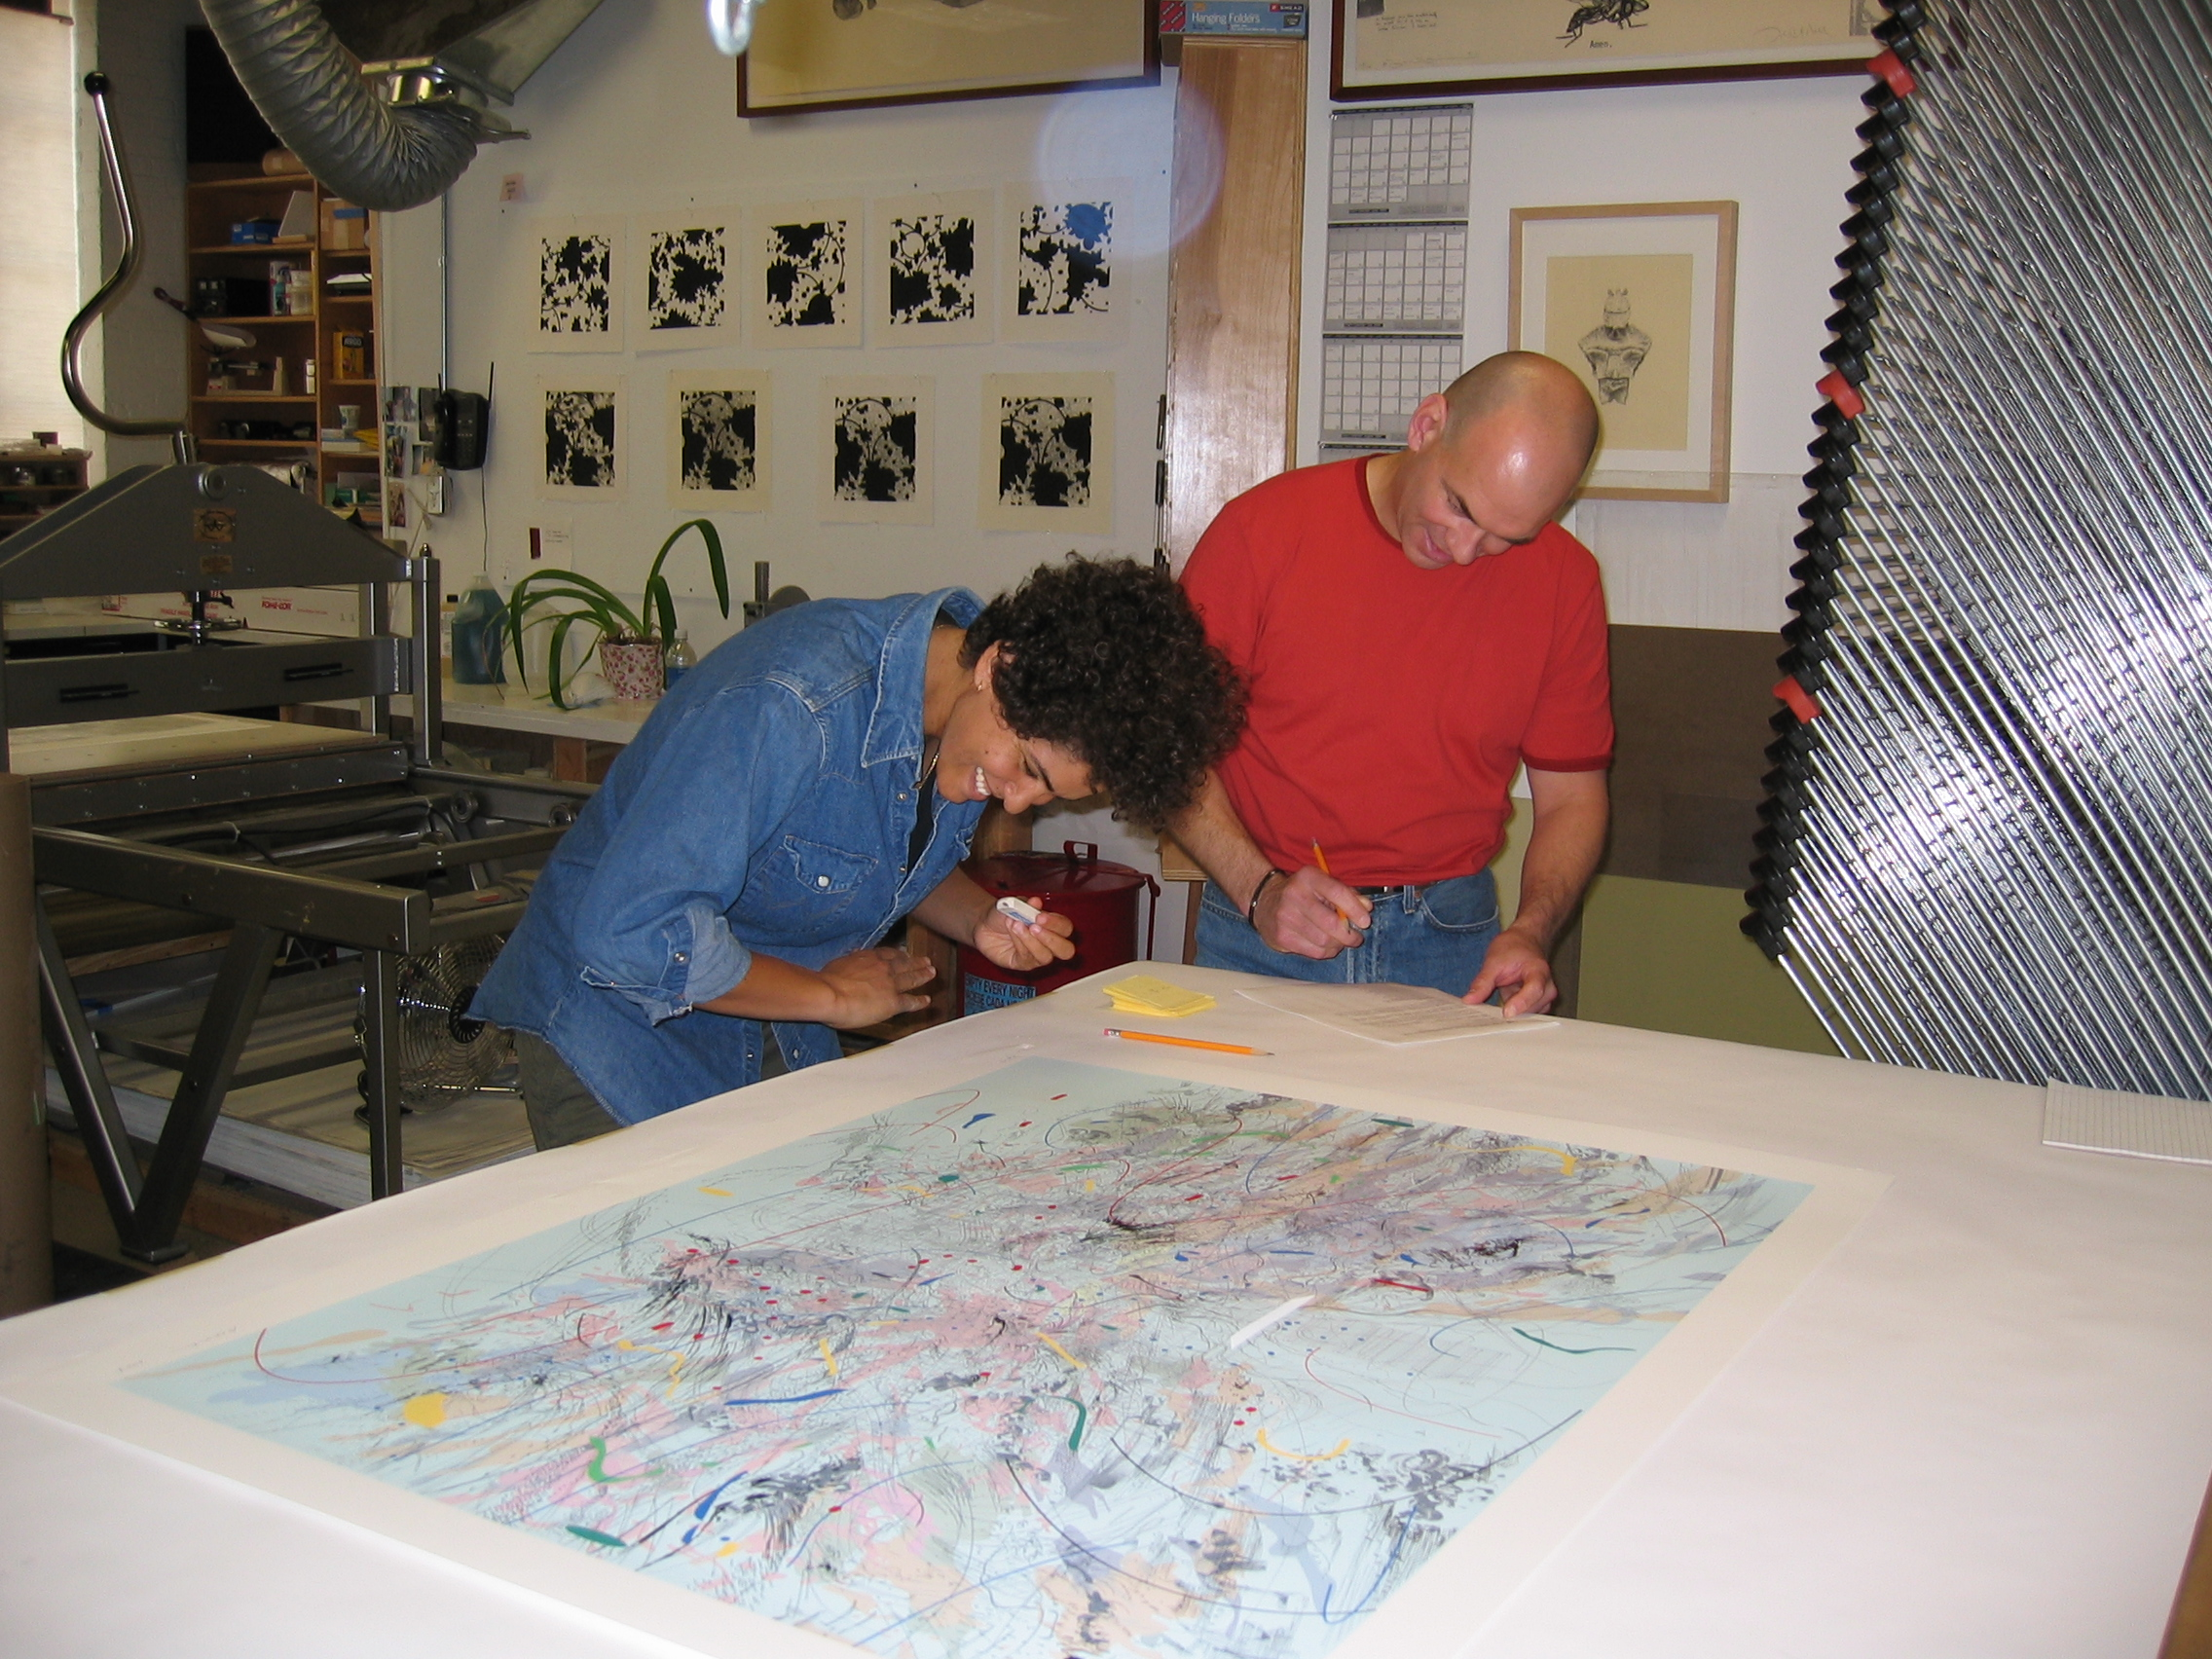 Artist Julie Mehretu and master printer Cole Rogers work on her print exhibition. Mehretu's prints are on exhibit in the Sarah Moody Gallery of Art, January 24 through March 8, 2019.